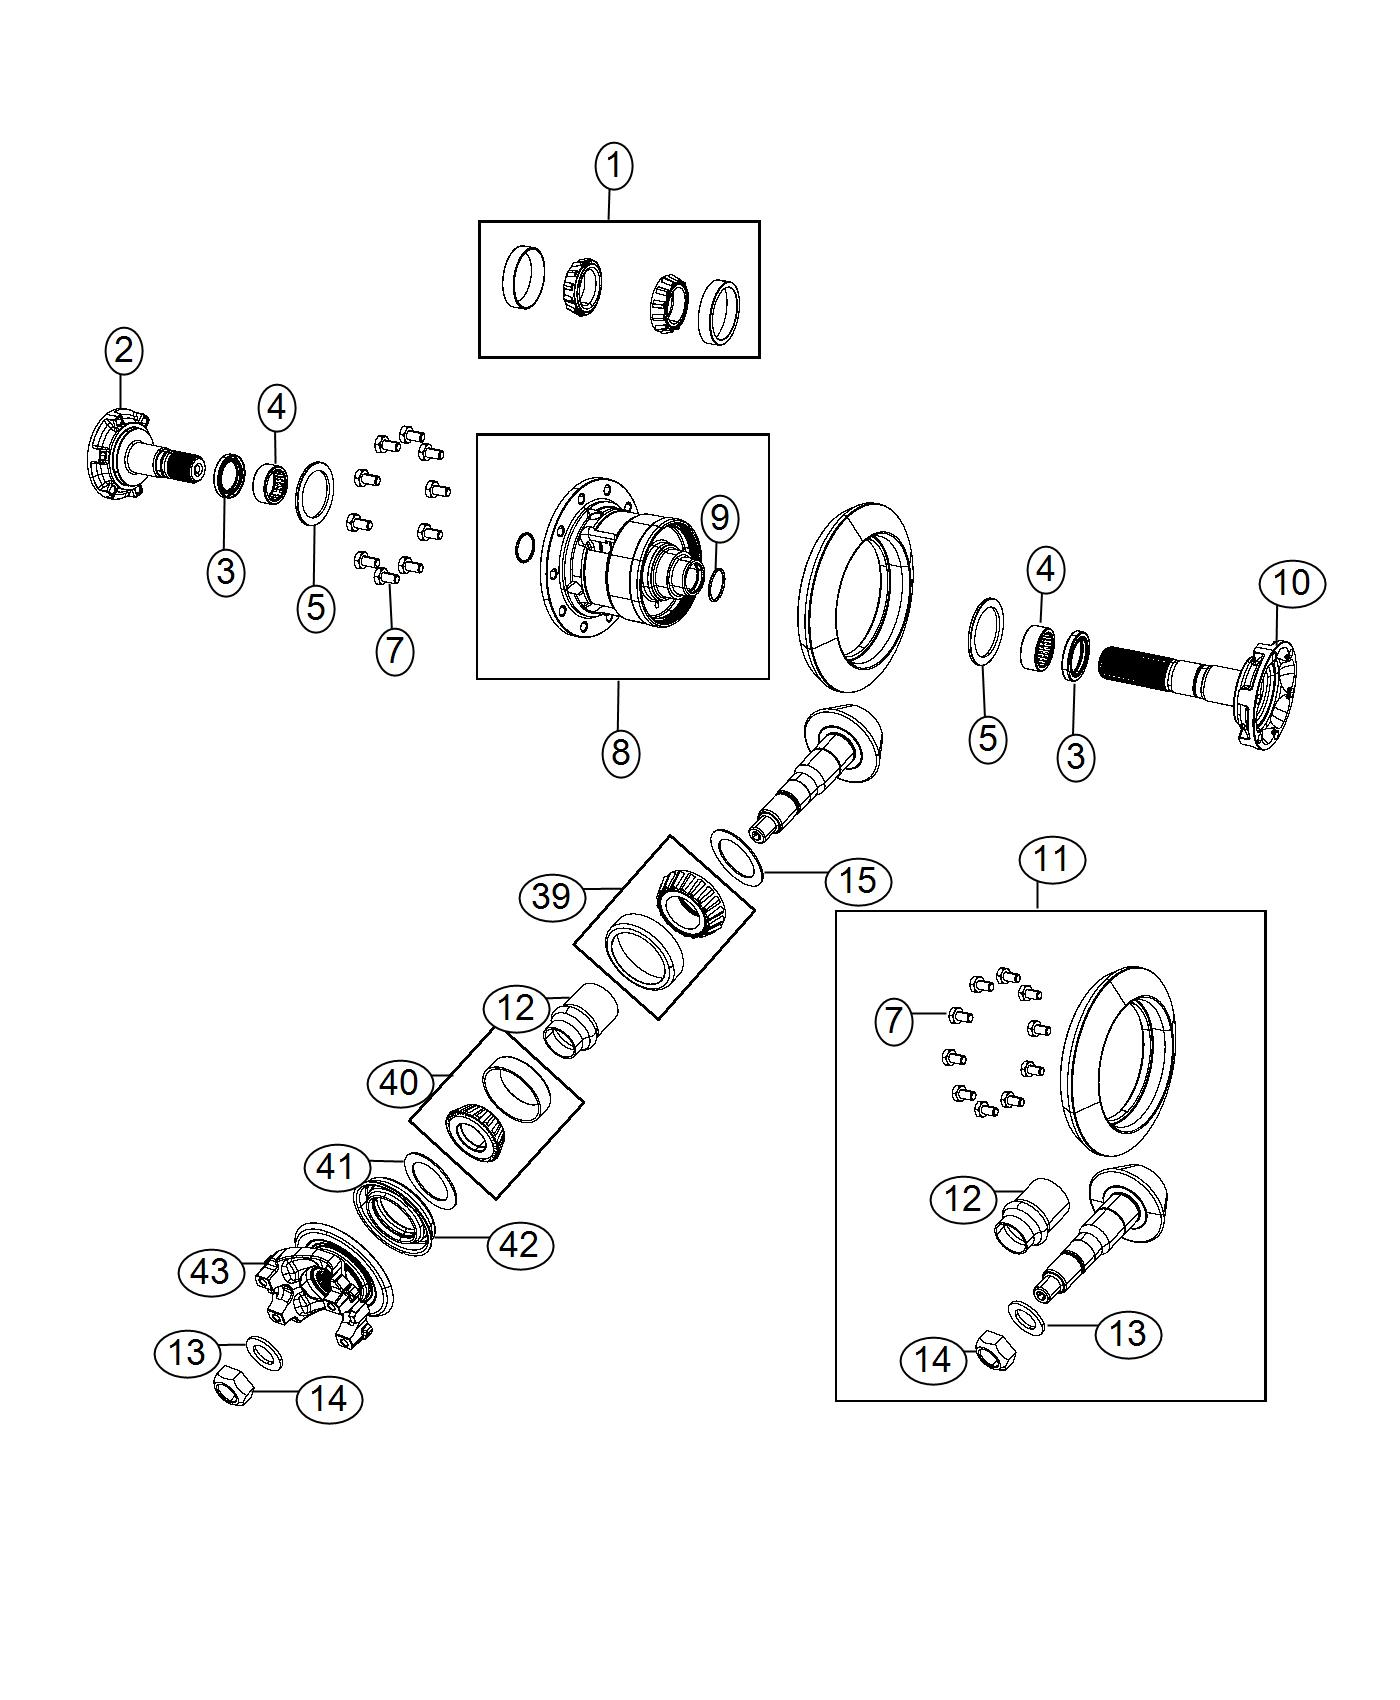 Ram 2500 Belt Diagram - Wiring Diagrams List